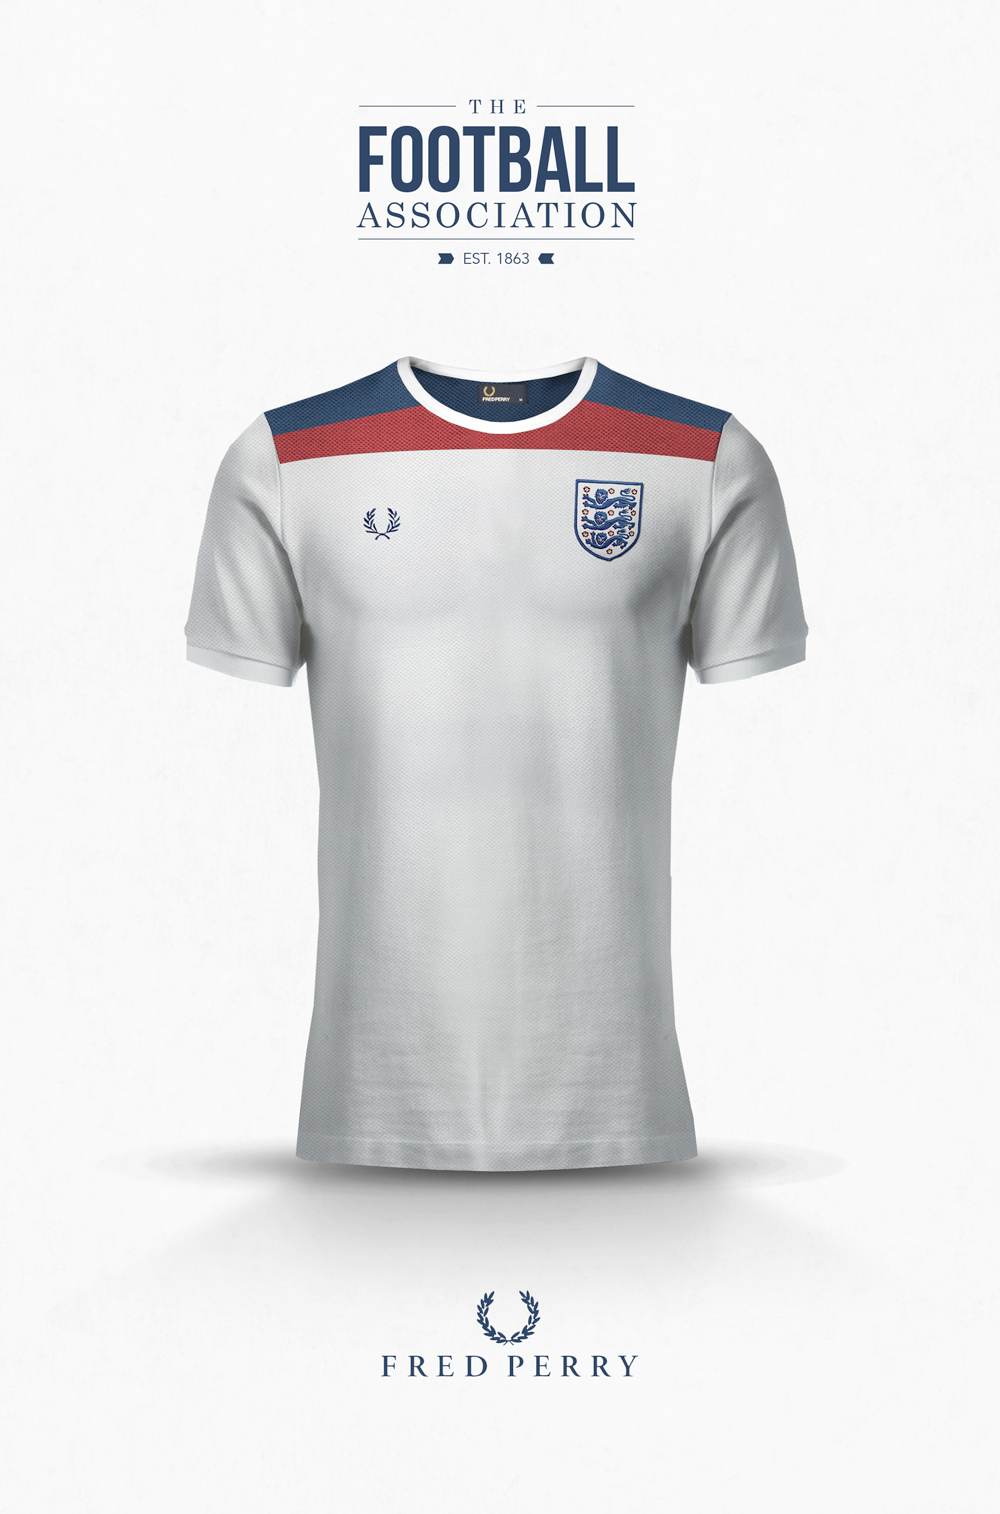 online store 8dfa6 214b8 Concept of national football kits designed by fashion brands ...